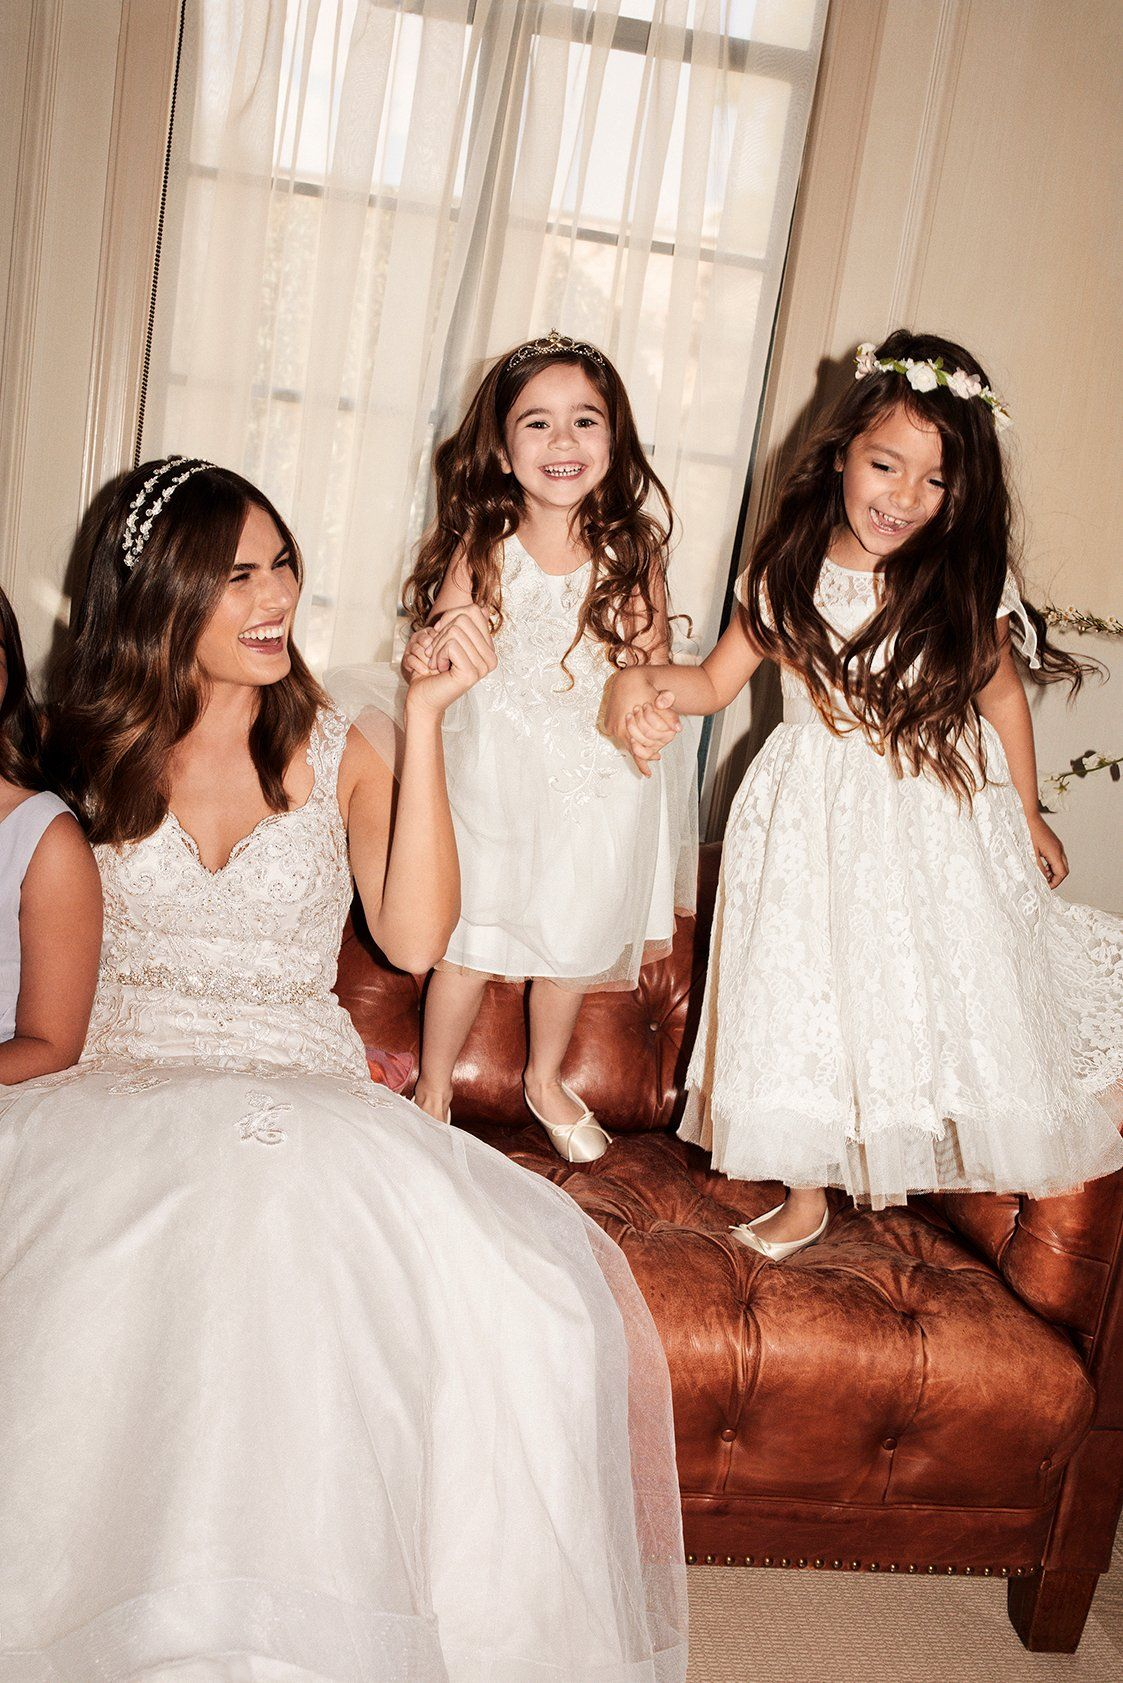 Too cute Your flower girls deserve pretty white dresses too Shop